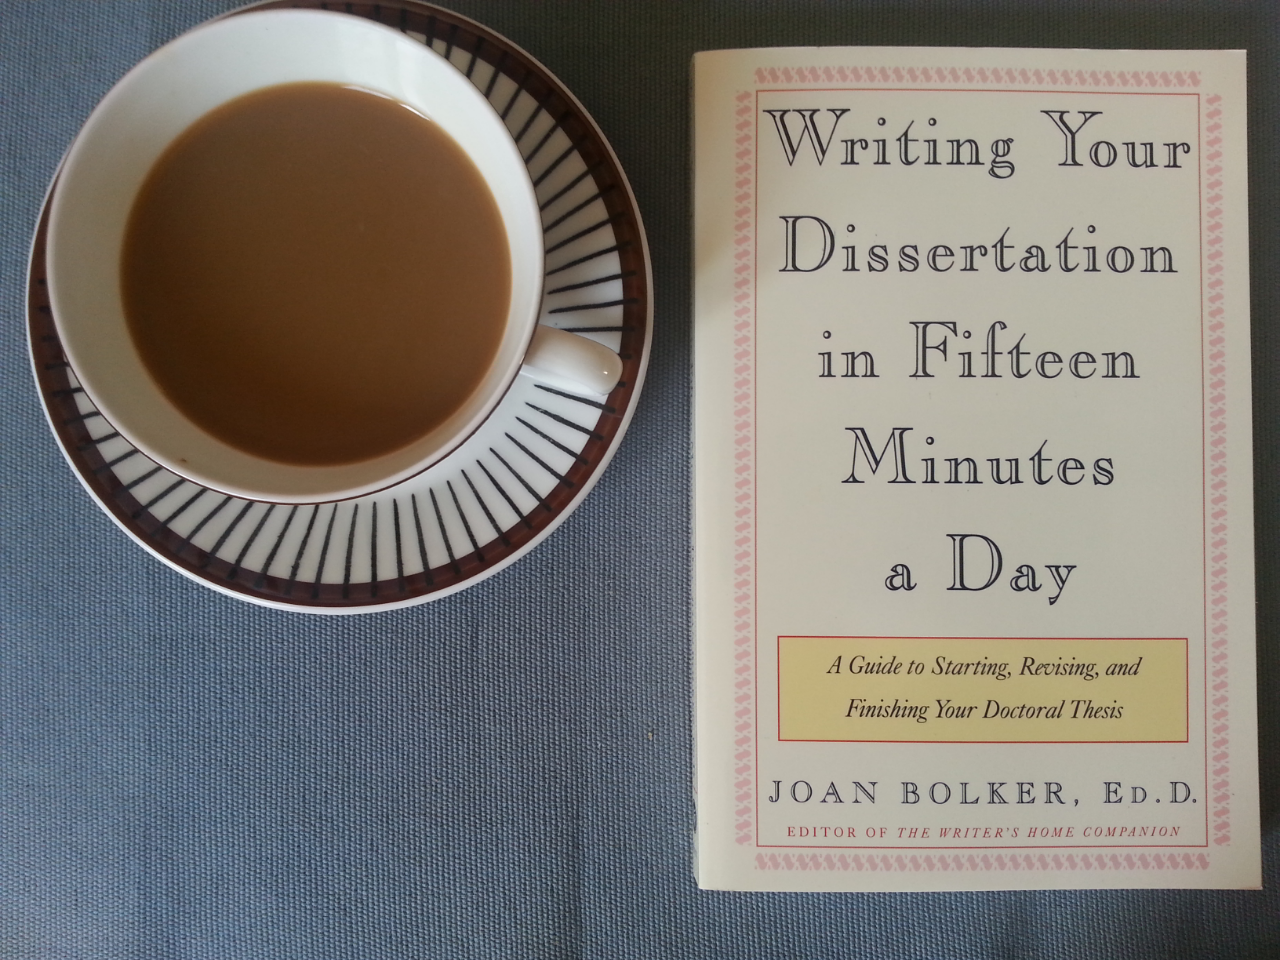 dissertation in fifteen minutes Writing your dissertation in fifteen minutes a day discussion in 'general distance learning discussions' started by surfdoctor, may 27, 2010.